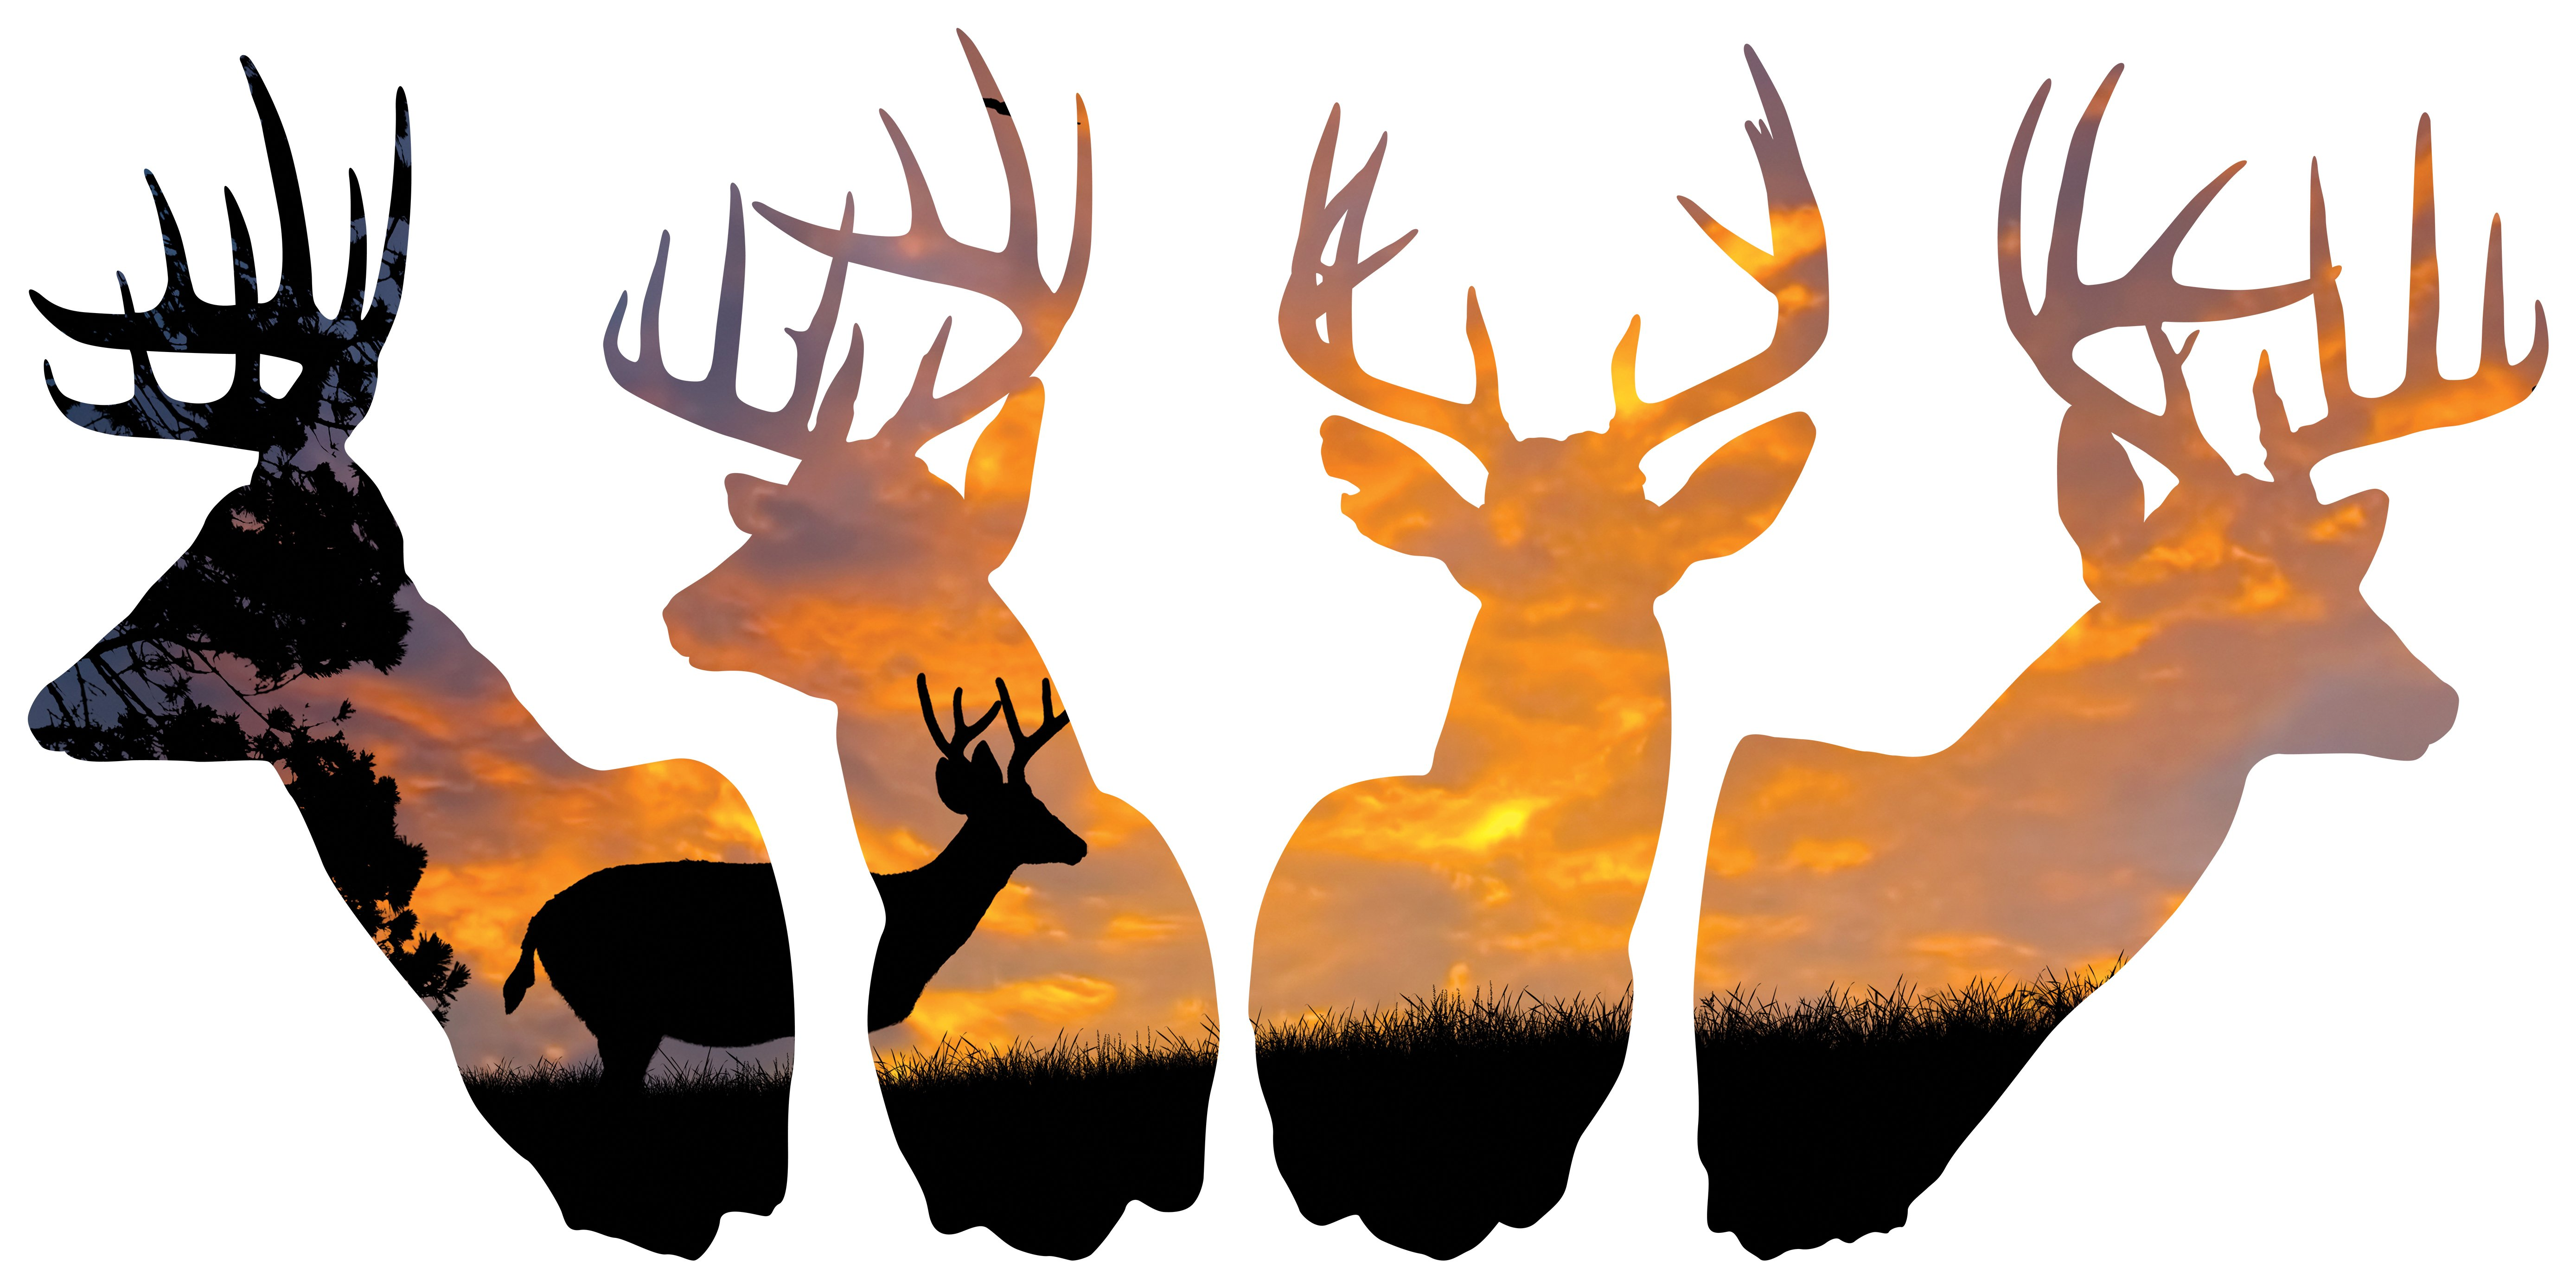 5555x2777 4 Deer Silhouette Hunting Background Large Wall Decals 4 Design